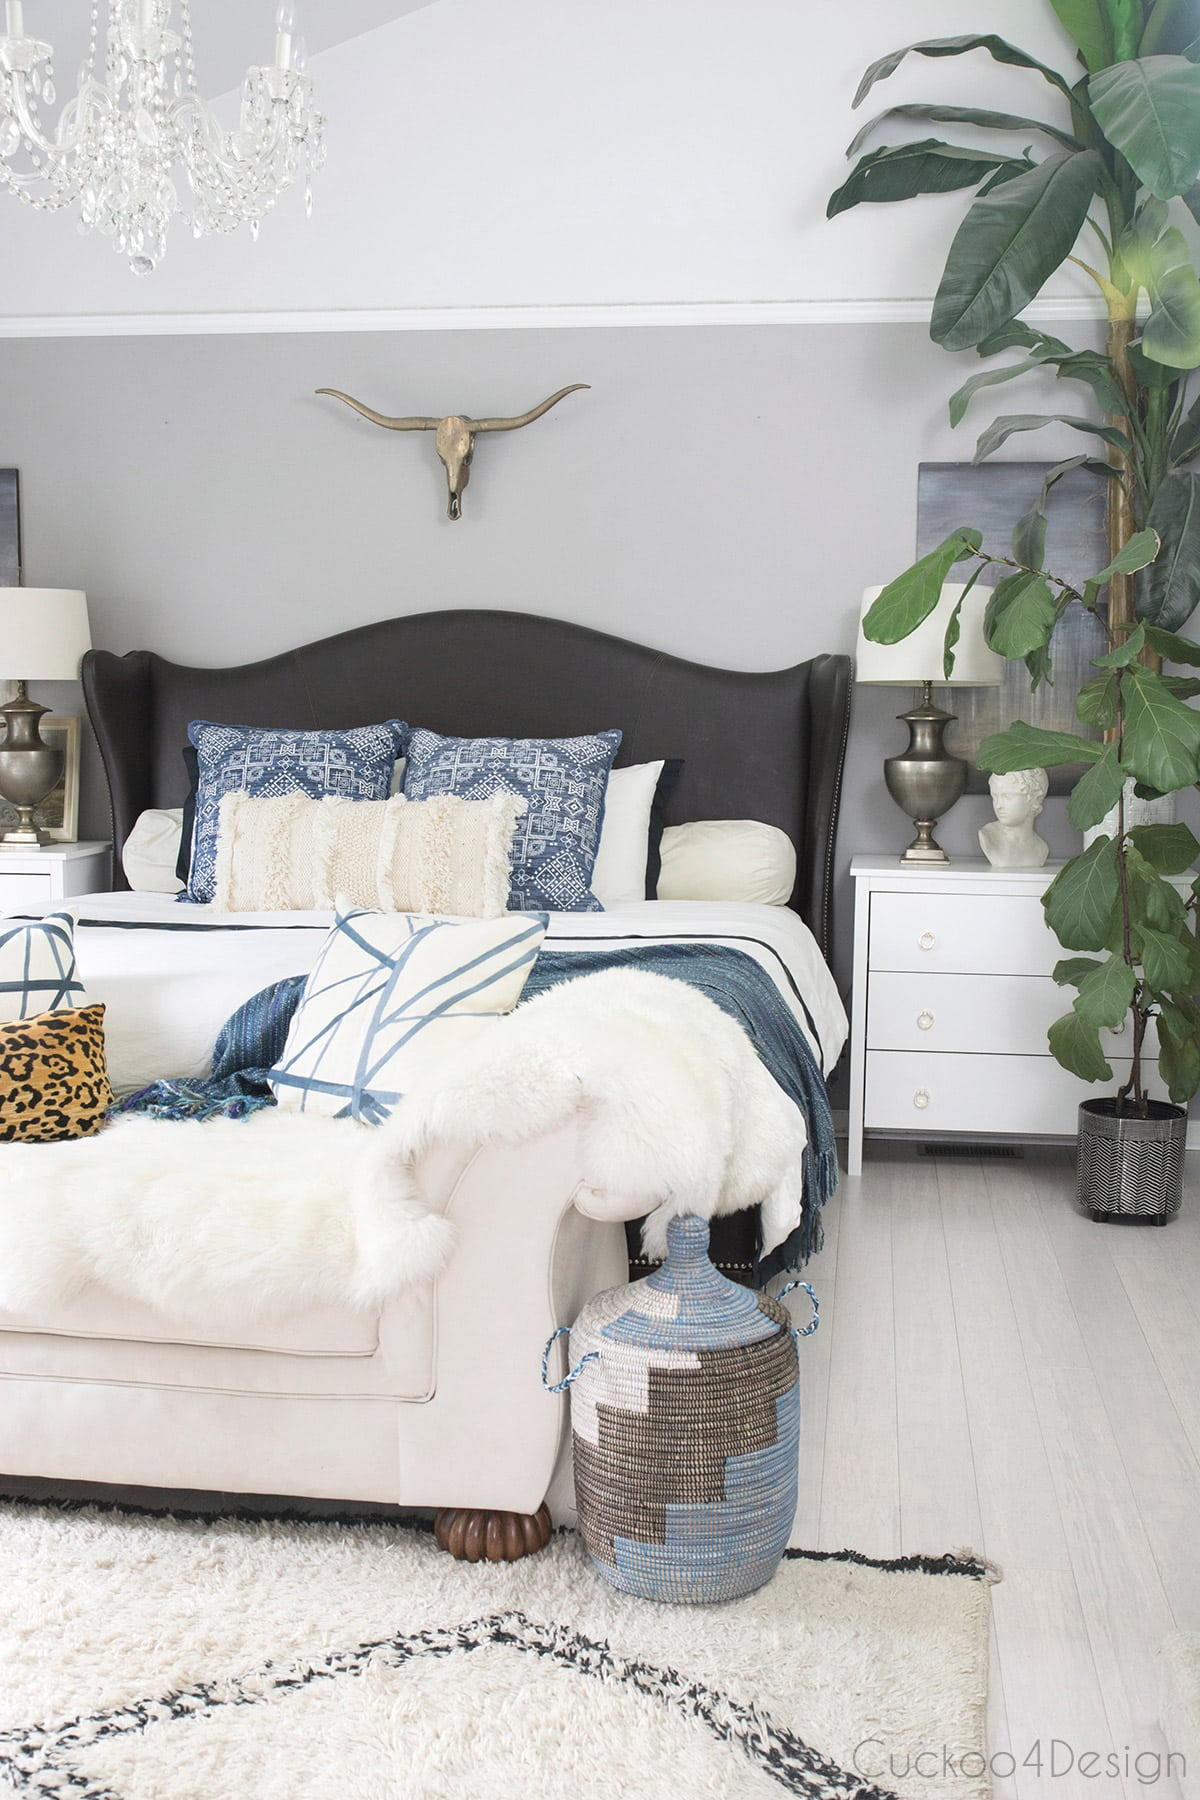 tips for decorating your bedroom on a budget in a neutral eclectic and bohemian style